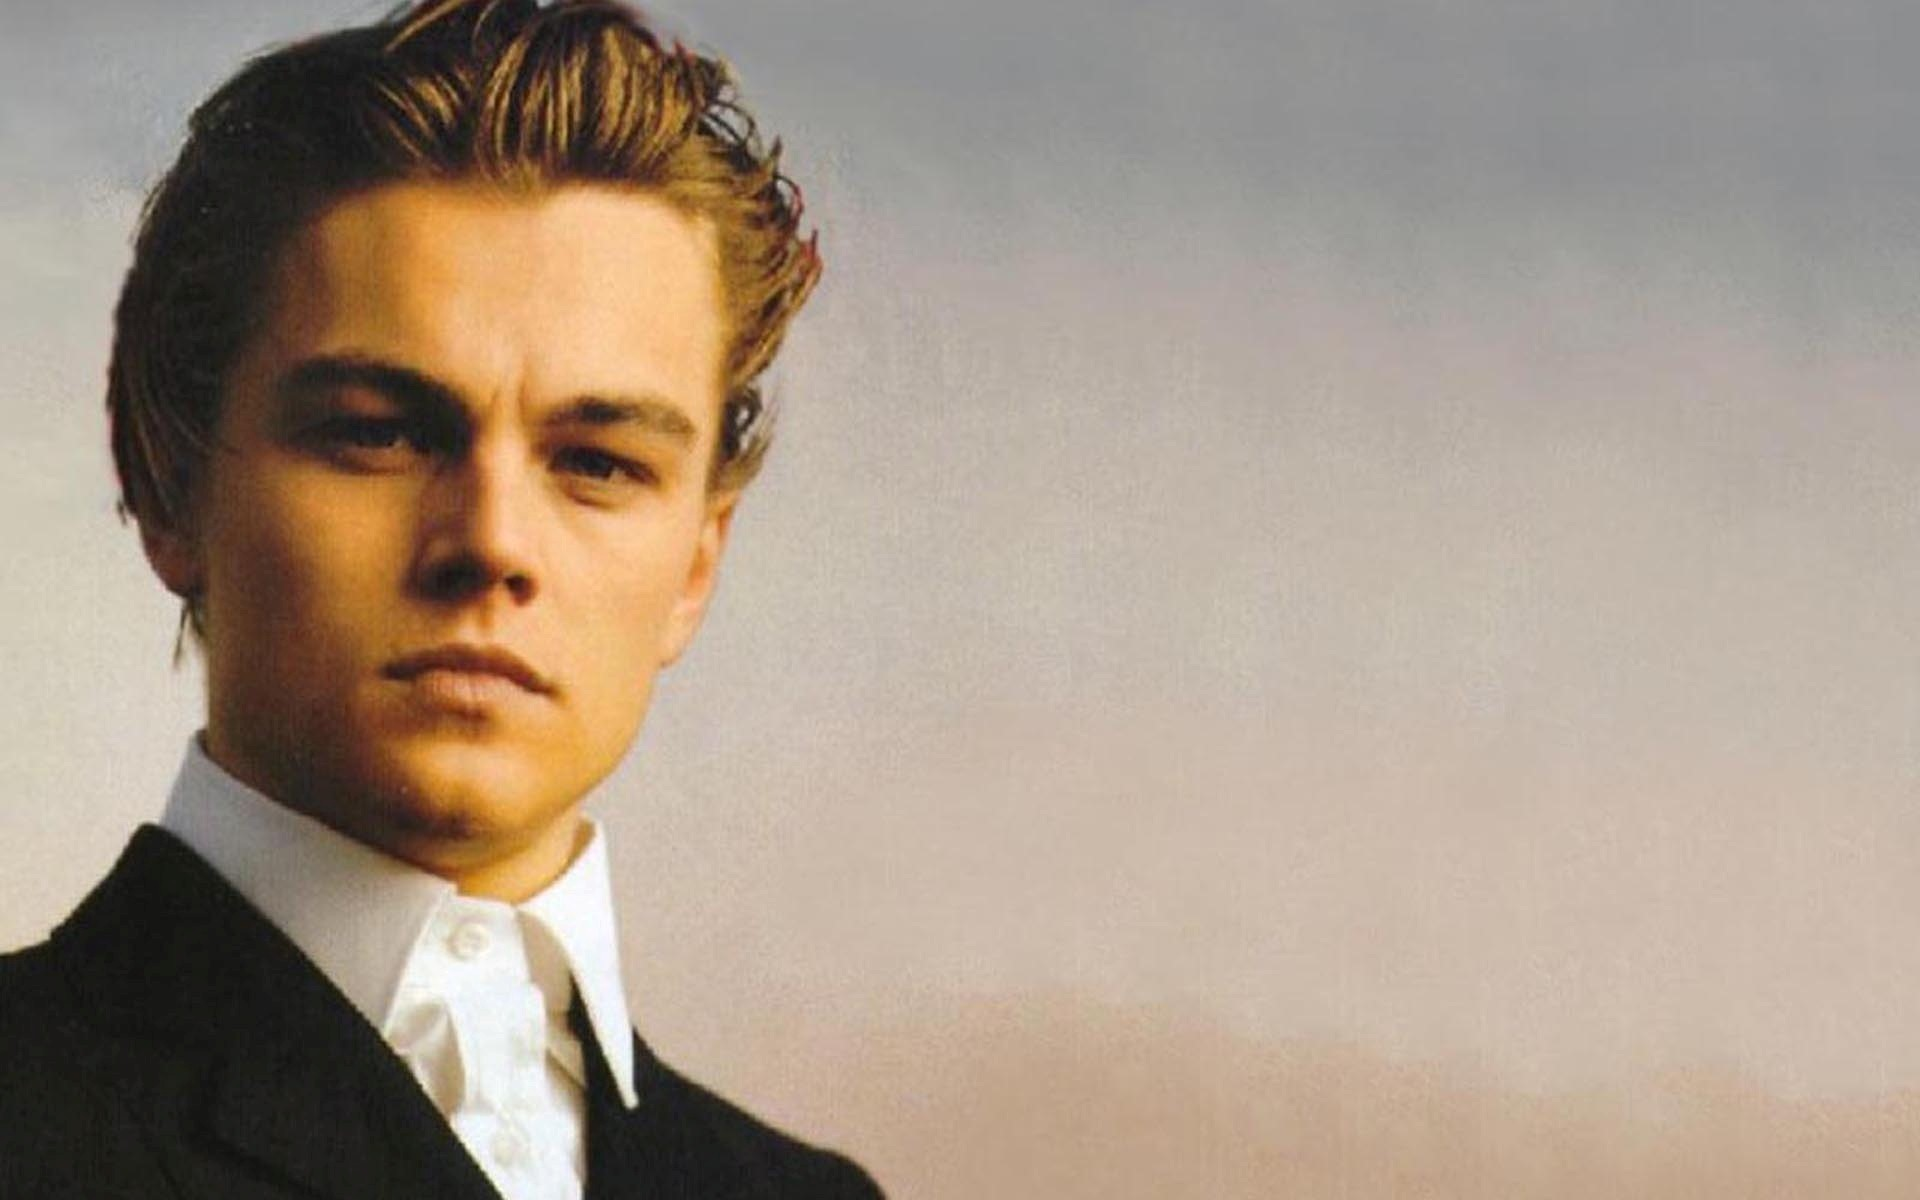 leonardo dicaprio Leonardo dicaprio has said yes to starring in quentin tarantino's new movie that will come out in 2019.